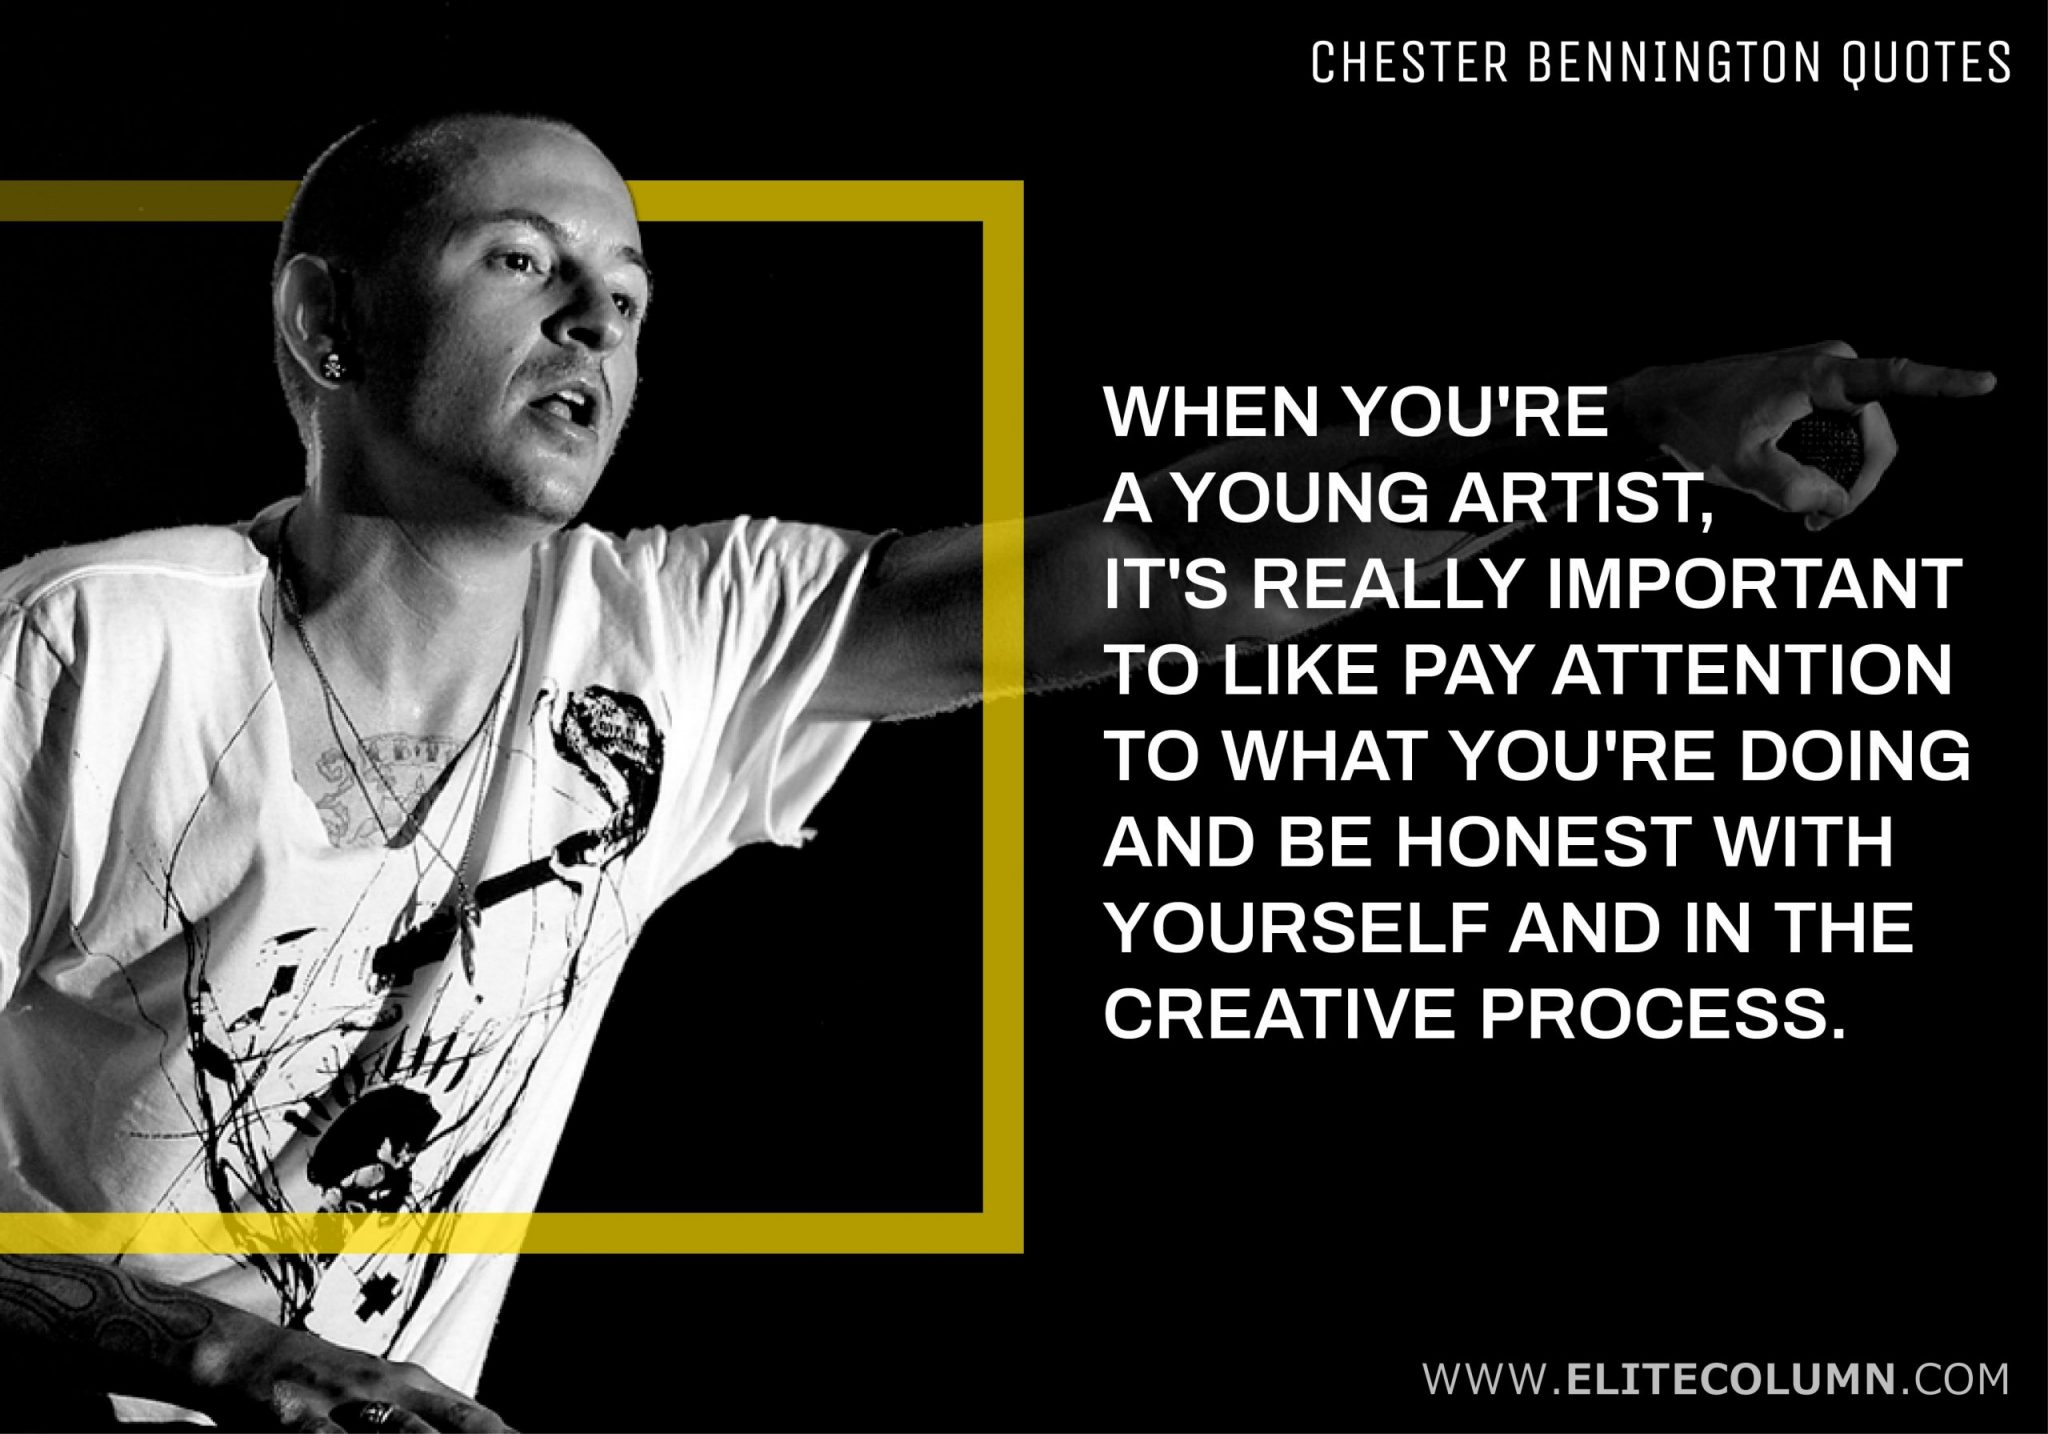 Chester Bennington Quotes (4)